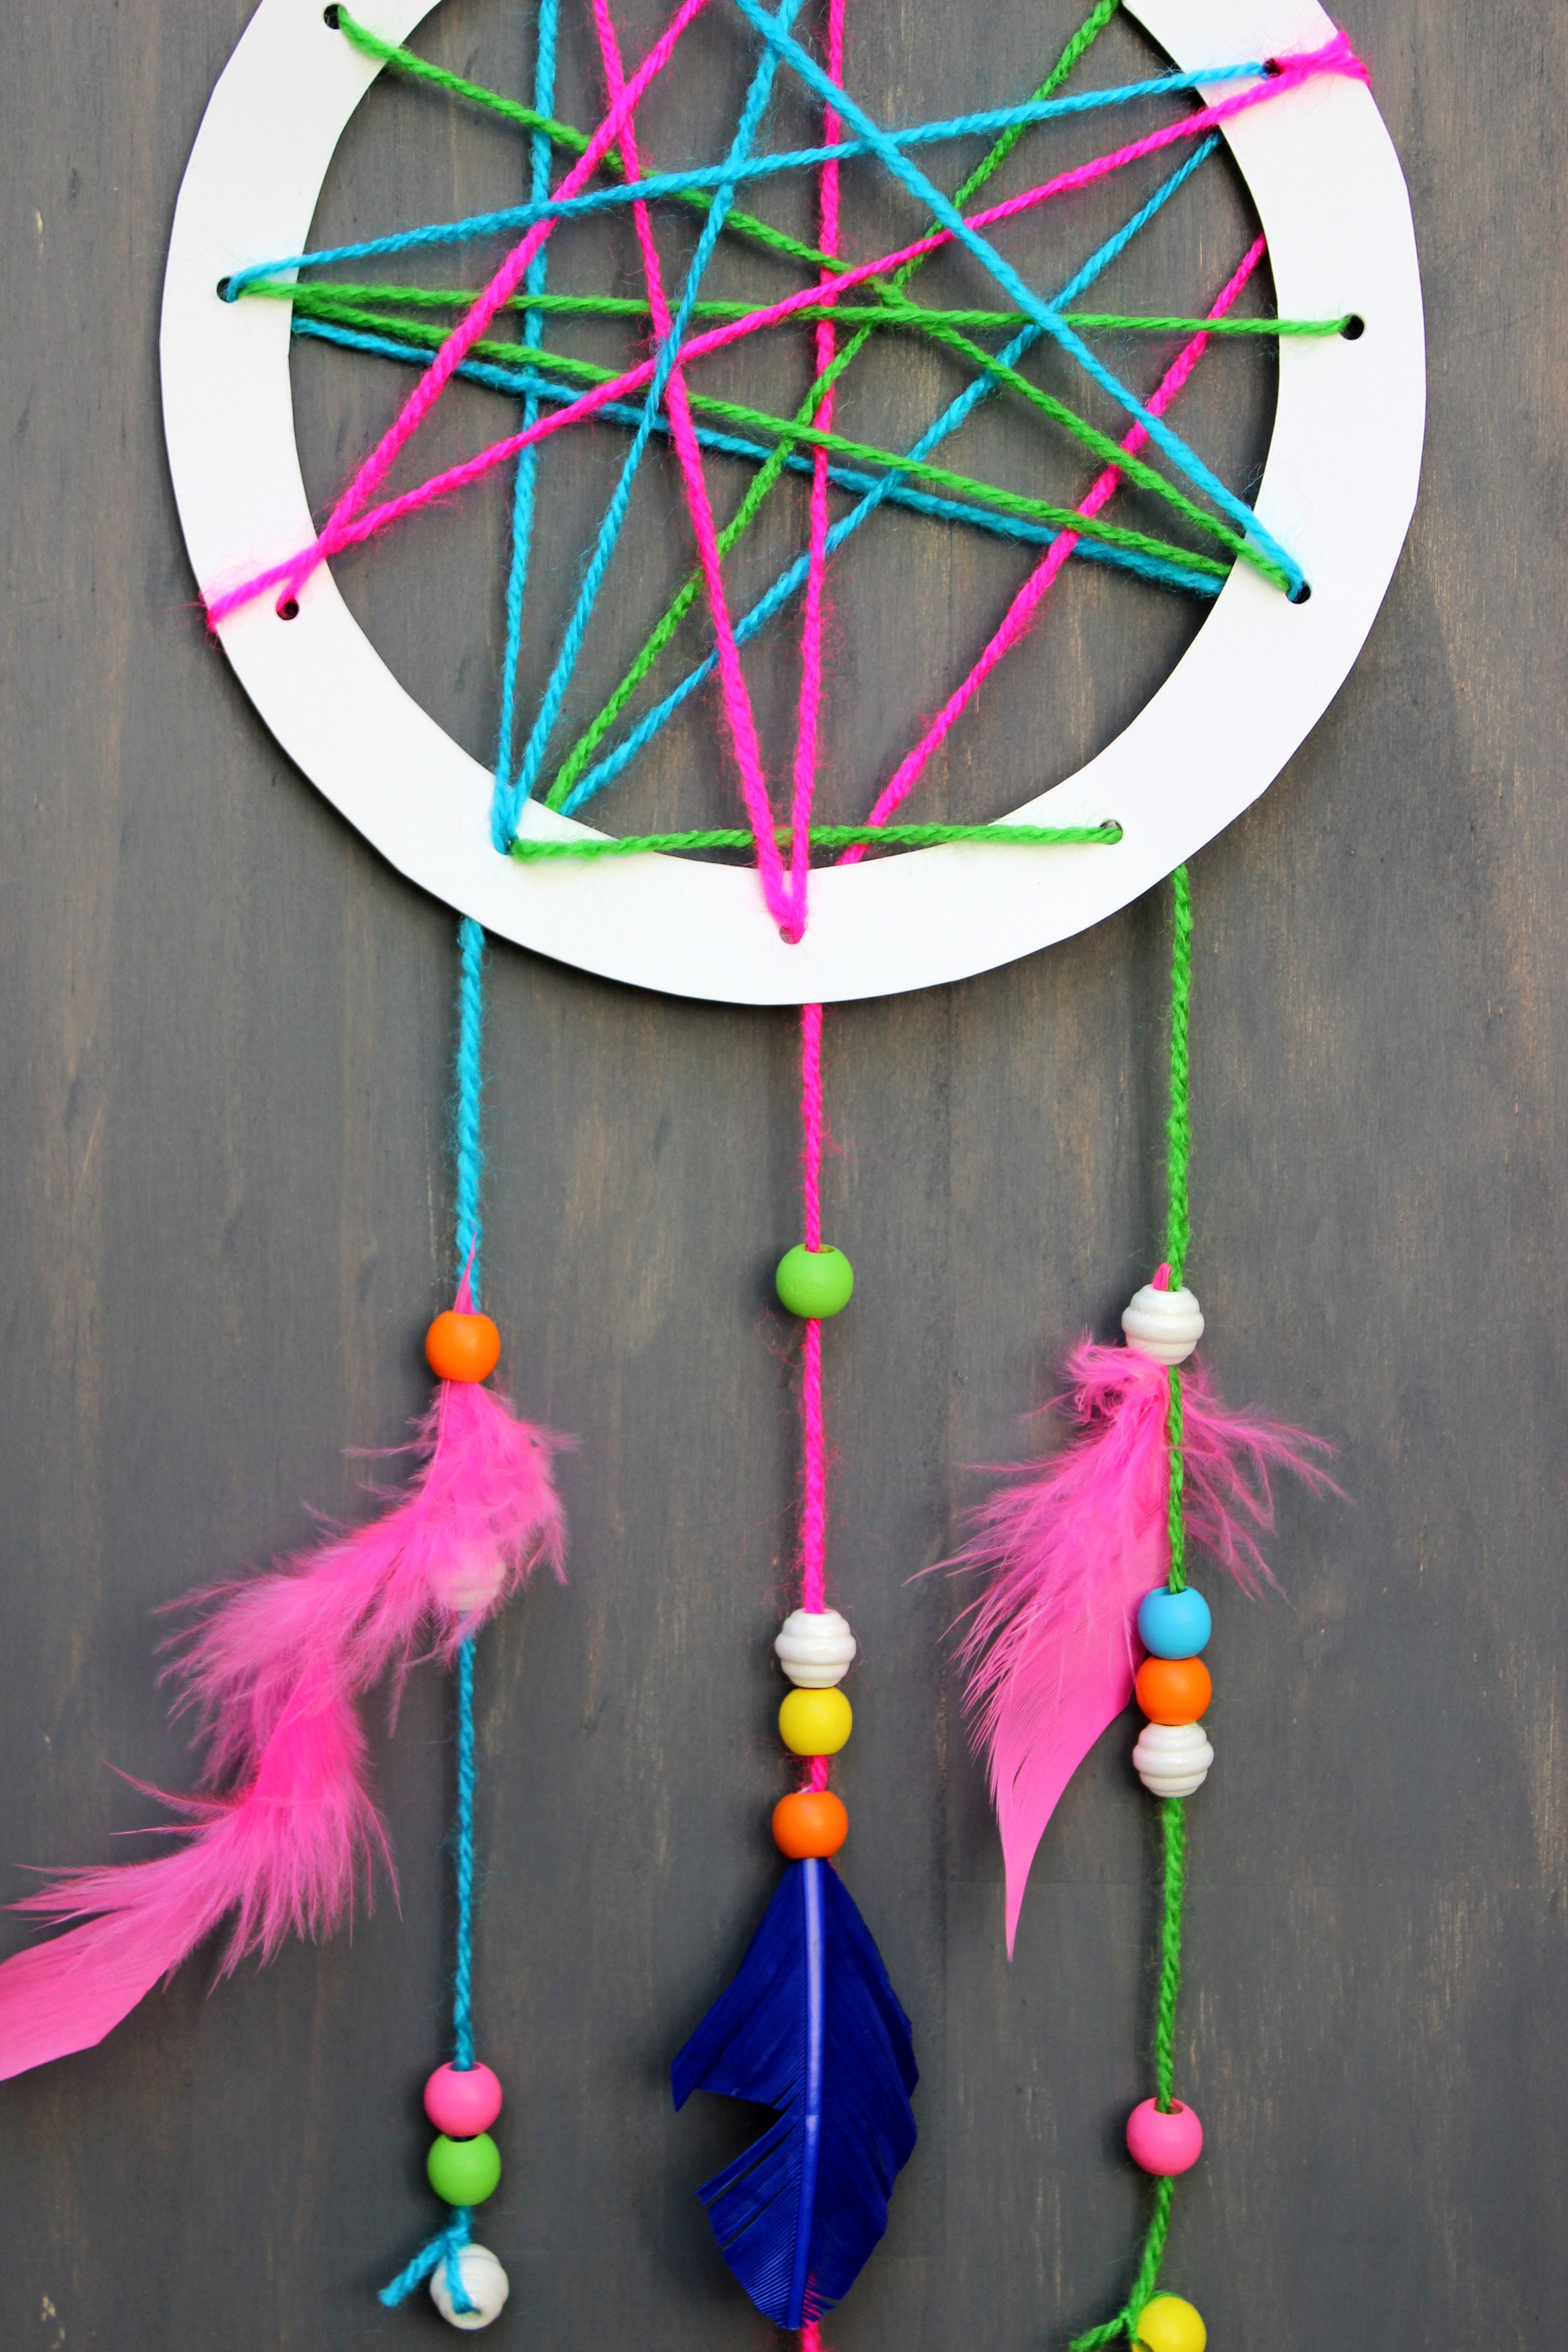 Diy Arts And Crafts How To Make A Dream Catcher For Kids On Jane Can A